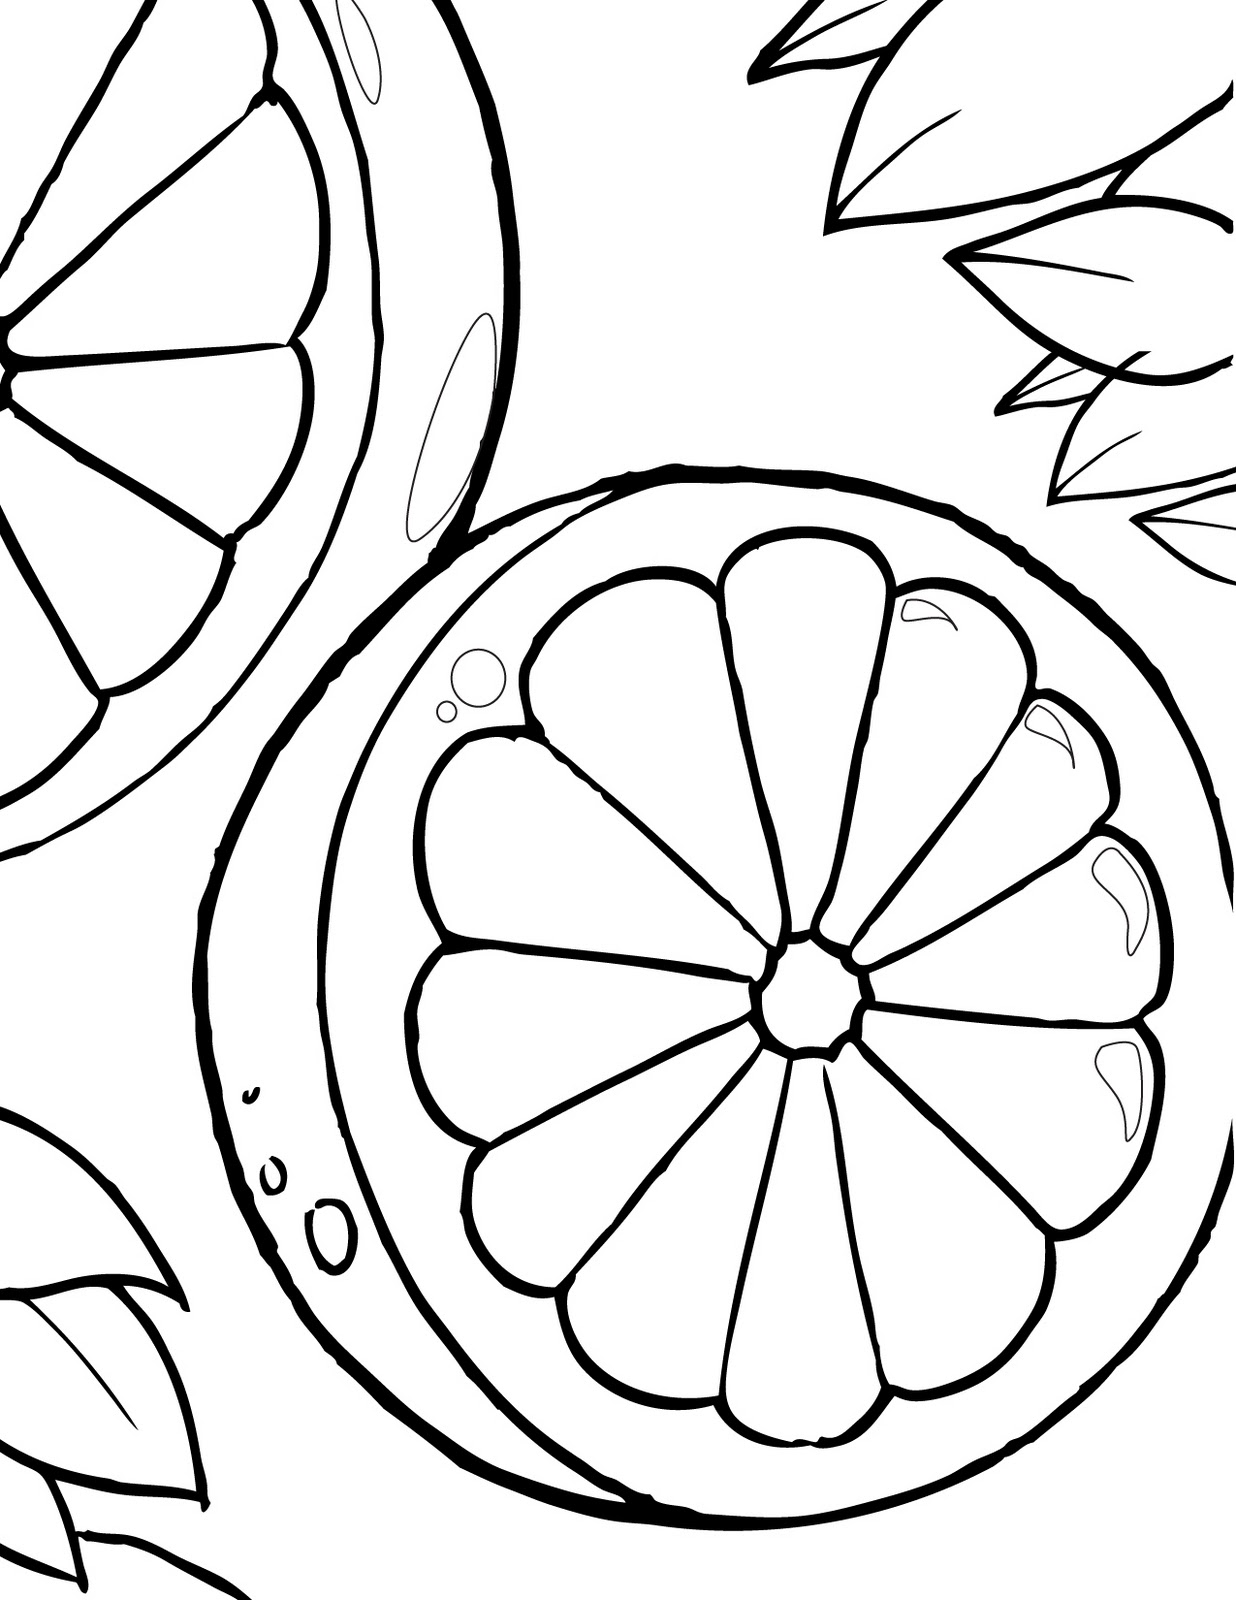 coloring pages free online - photo#50